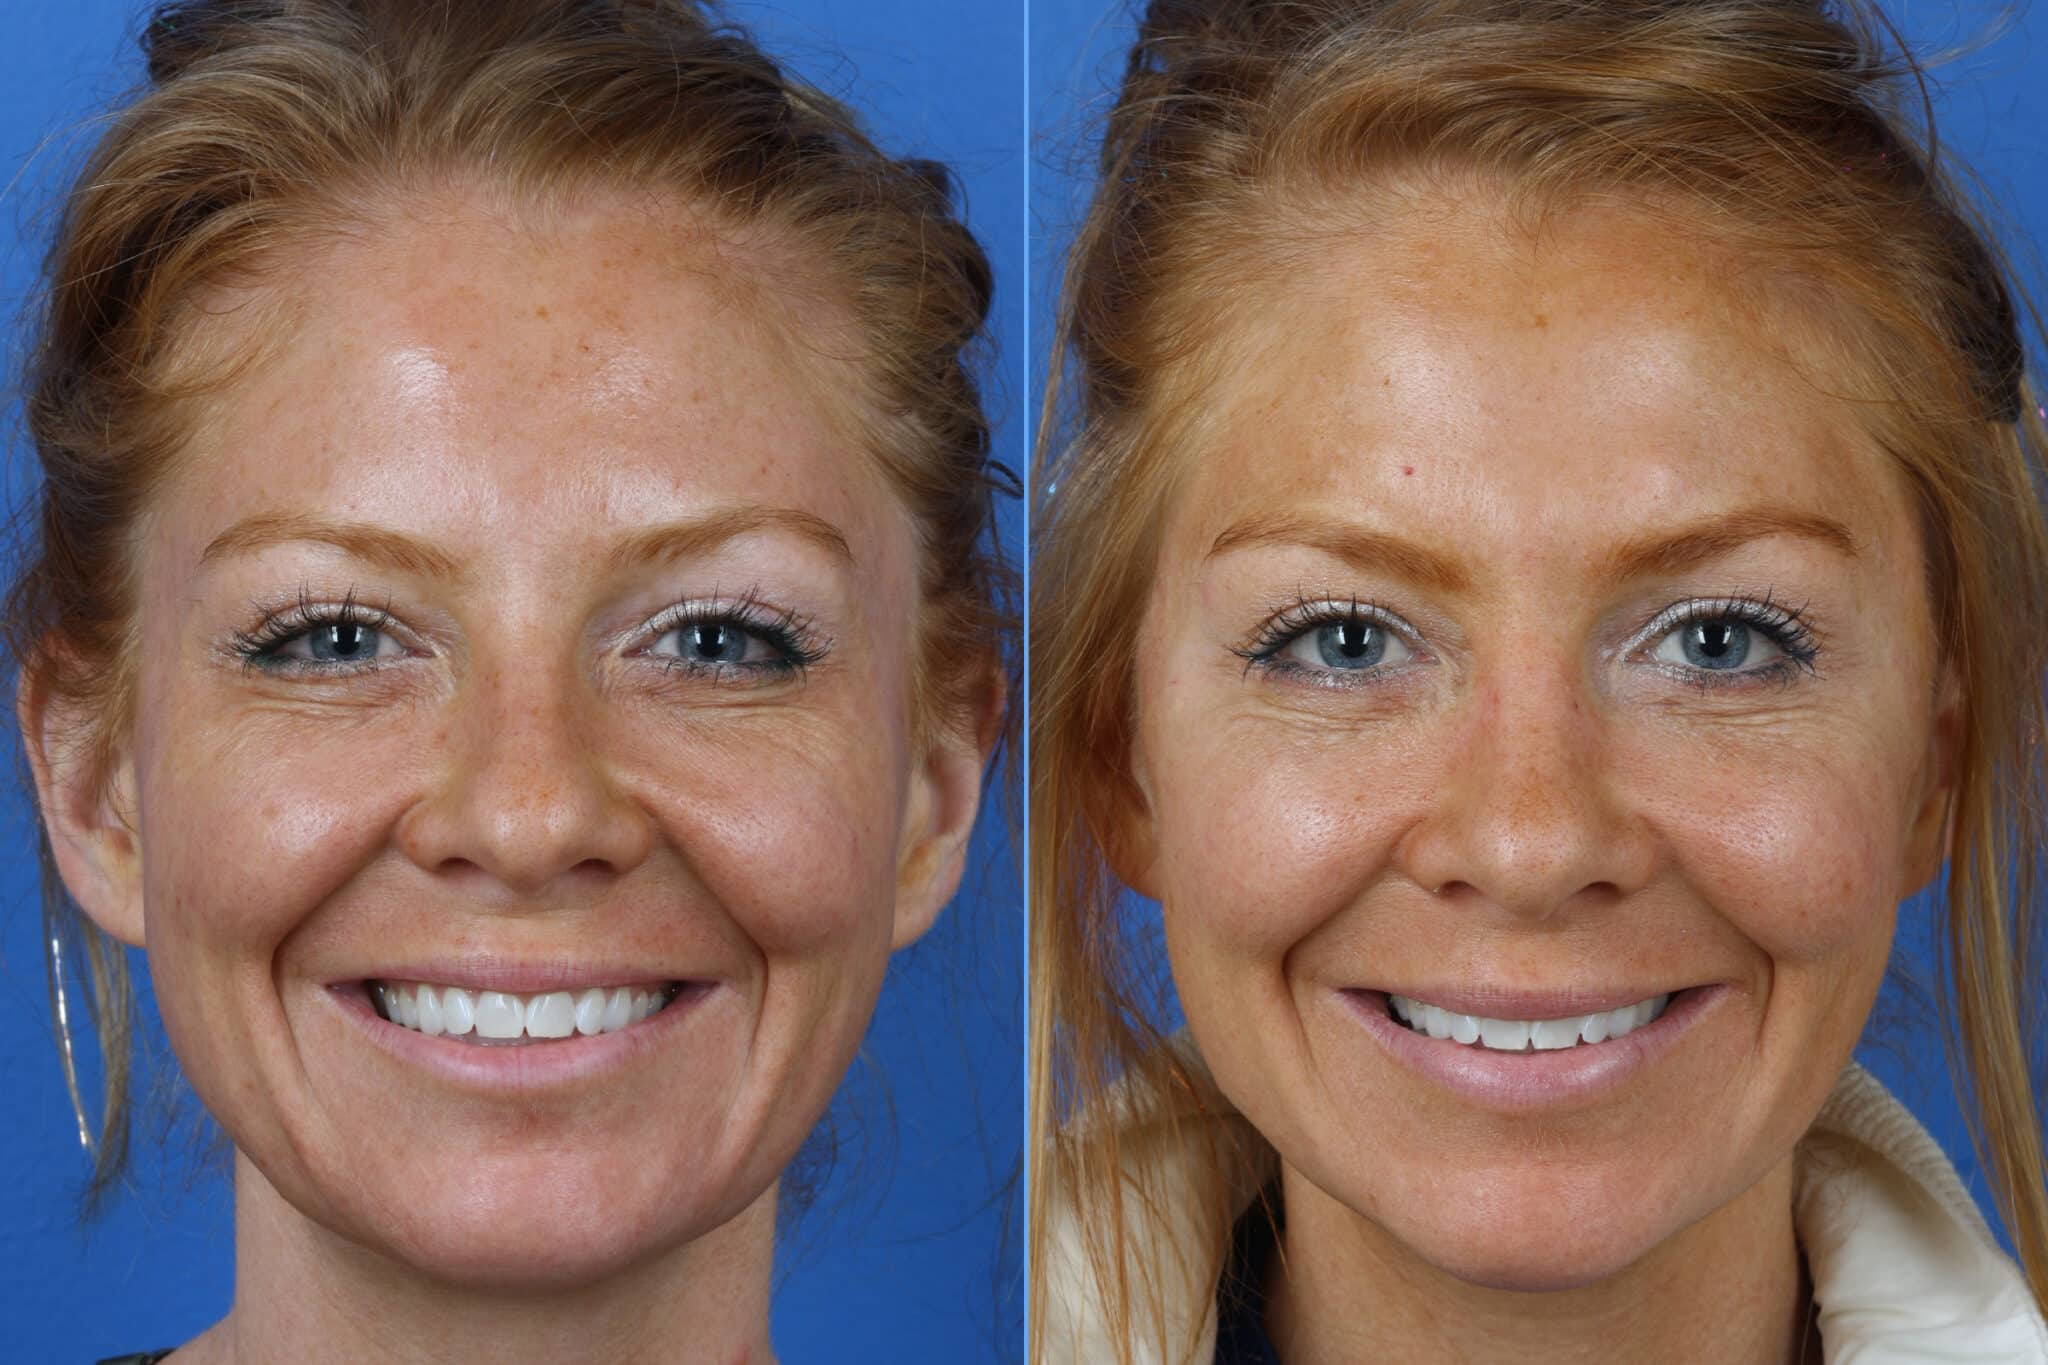 Micro Lift to Correct Skin Laxity and Aging Symptoms by Dr. Miller